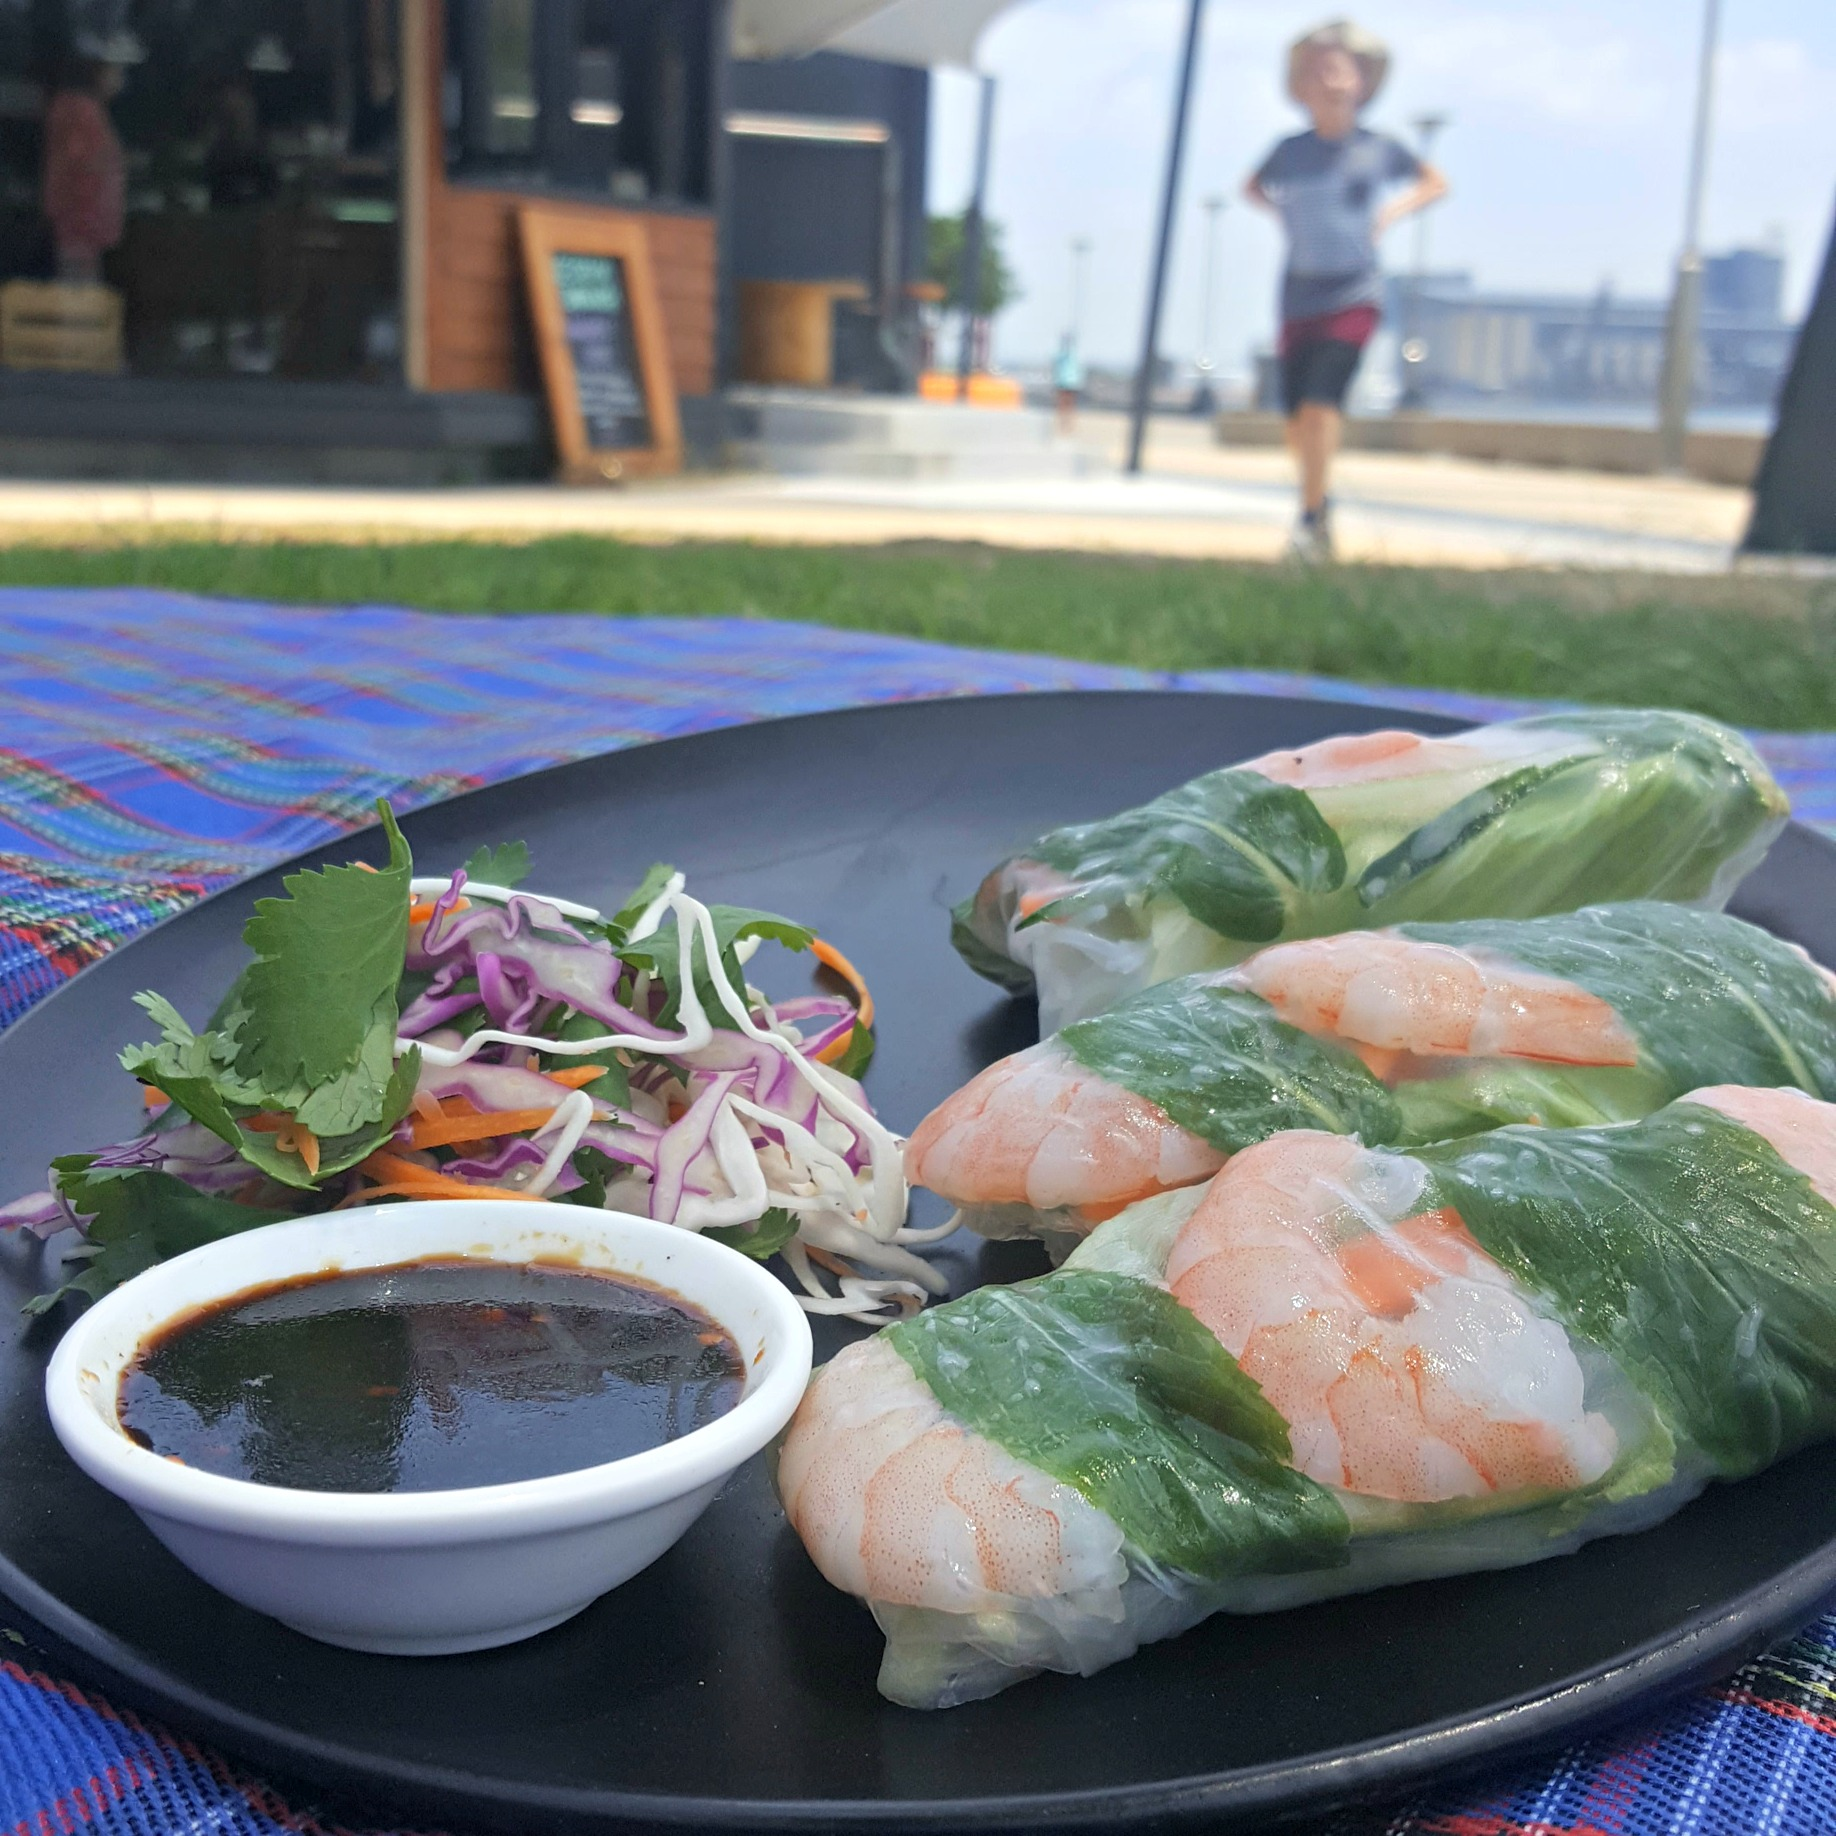 Option Three - Vietnamese rice paper rolls with black bean sauce (Served with herb salad and Black bean & pepper sauce)Fruit salad for twoYour choice of icecream from Lynch's Hub (2 x single serve of any of our awesome flavours of premium artisanal icecreams)2 x Bottles of Parkers organic soft drinks (Choose from ginger beer, cola, lemonade or lemon lime and bitters)2 x bottles of water